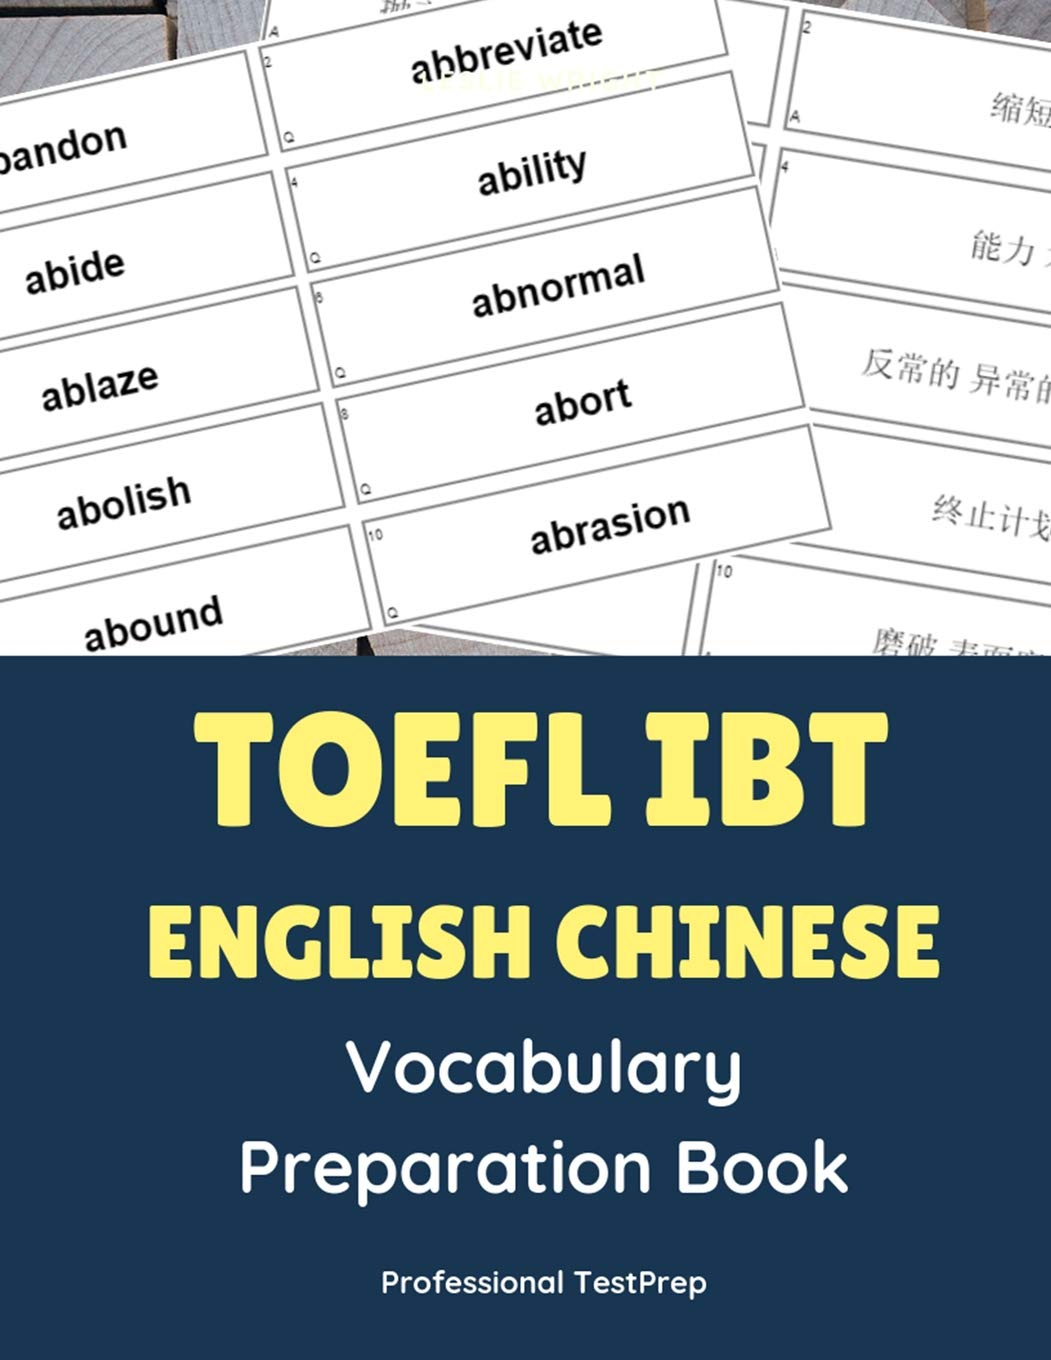 - Buy Toefl IBT English Chinese Vocabulary Preparation Book: Easy To